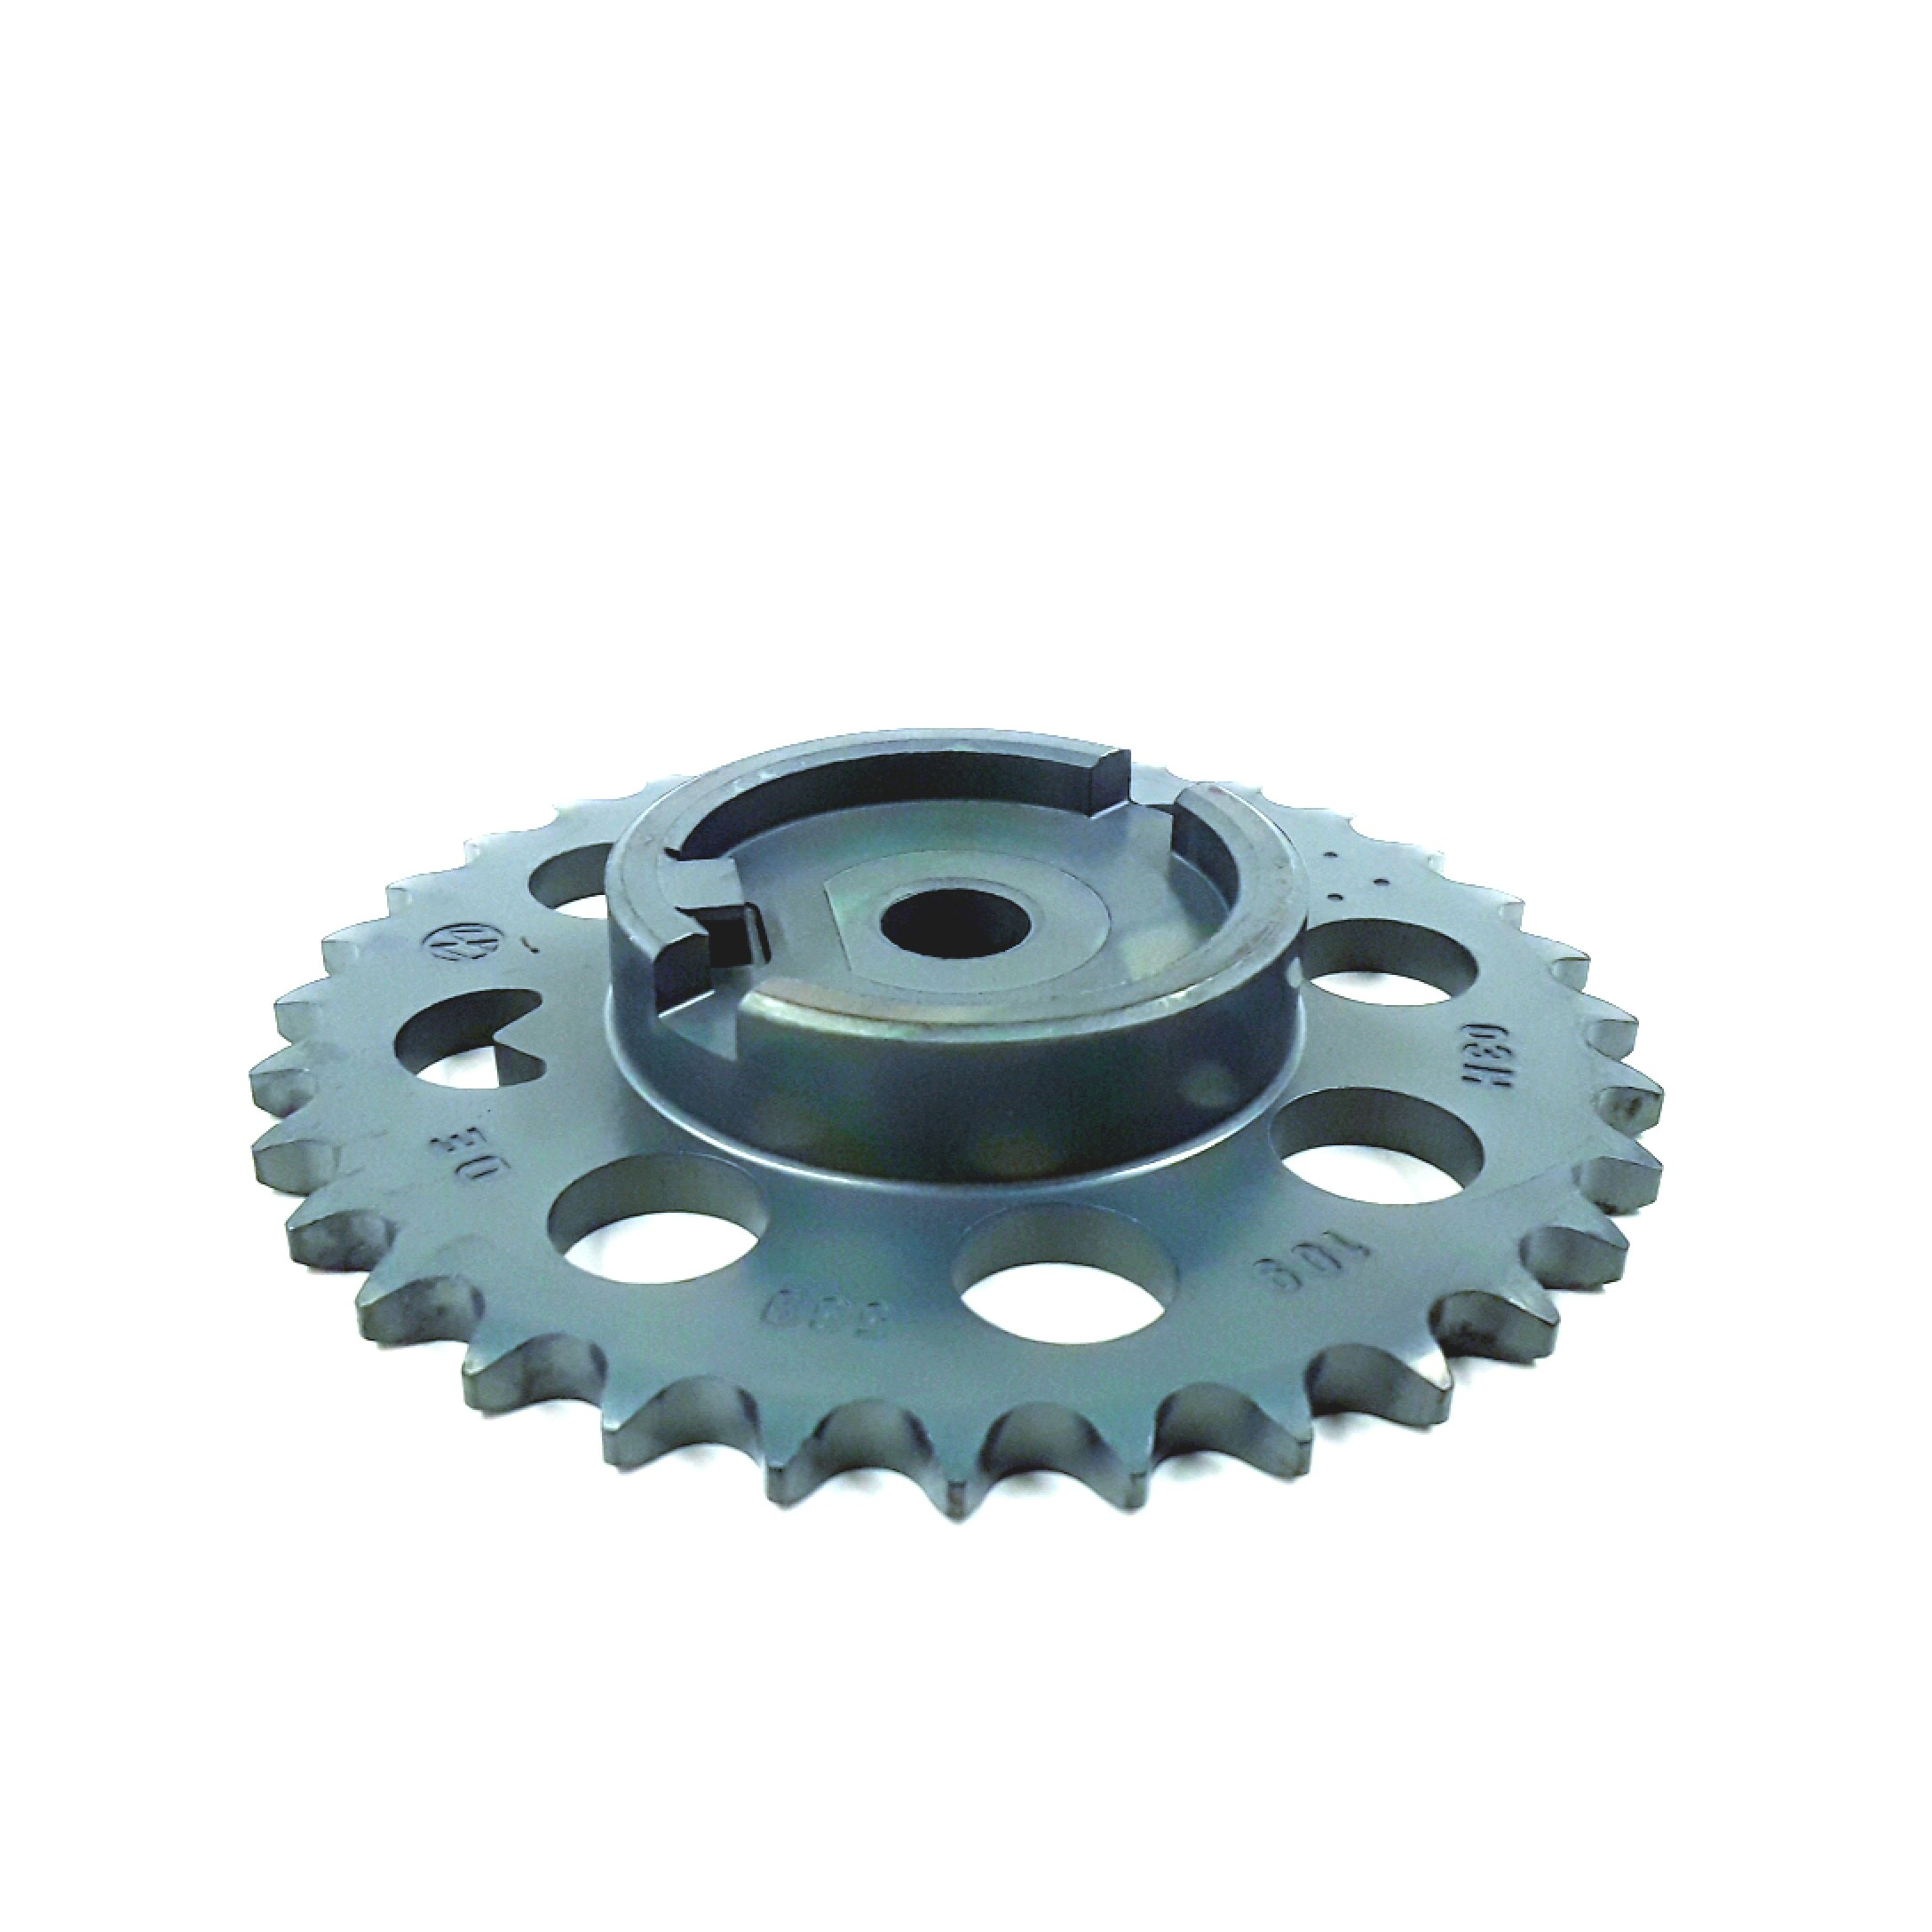 Volkswagen Passat Sprocket Timing Chain Wheel Chain